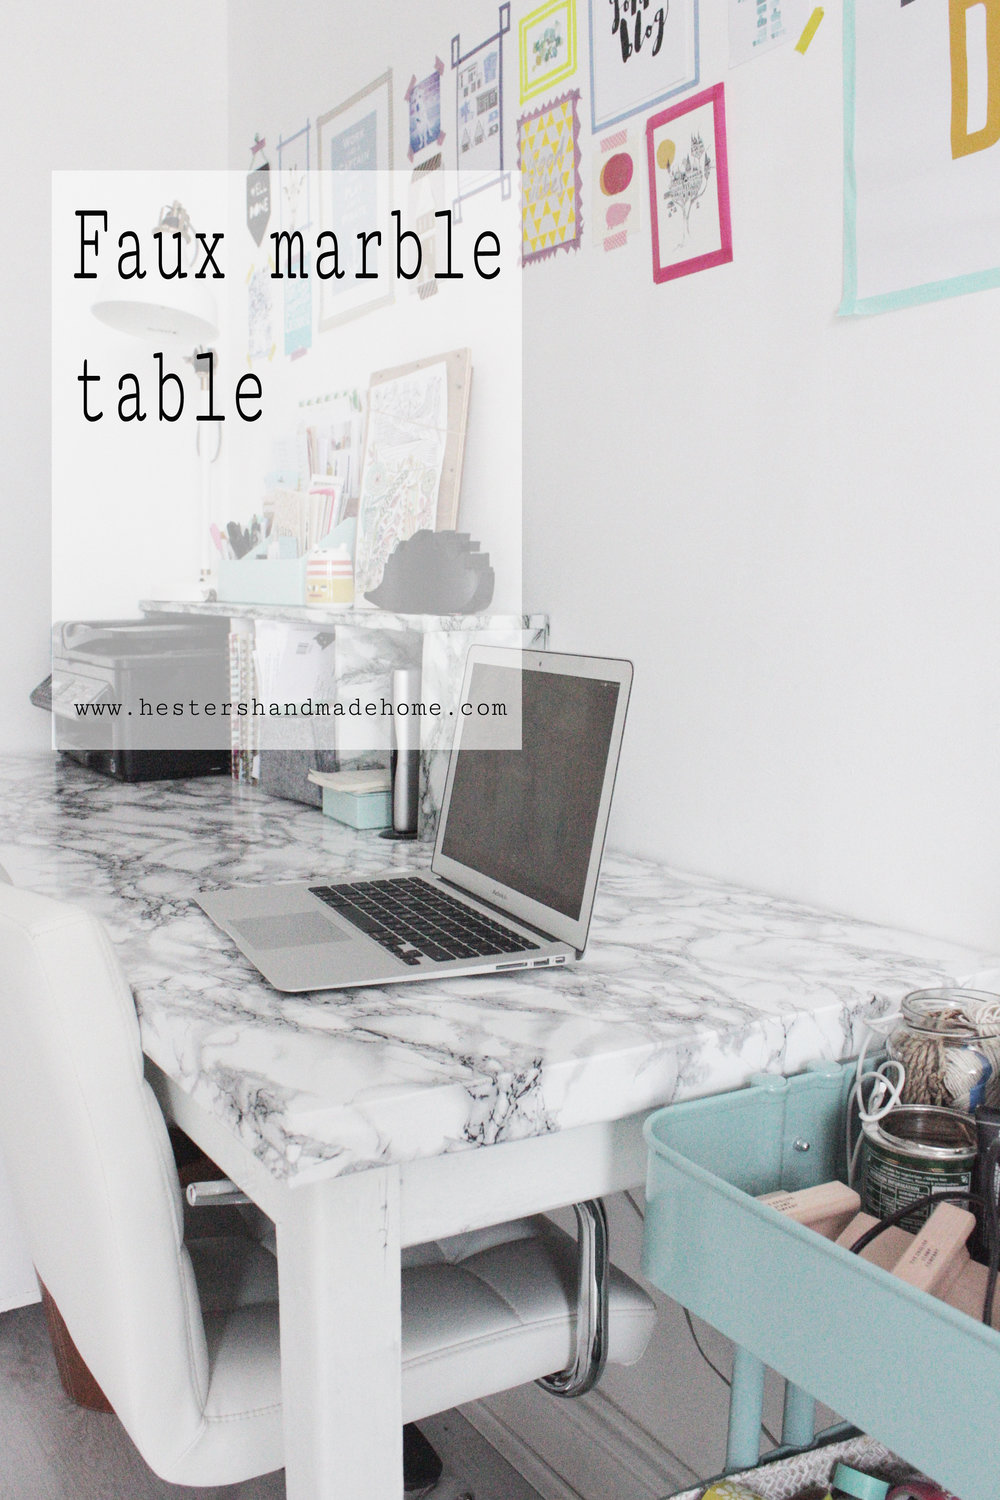 Marble desk tutorial using vinyl, tutorial by hester's handmade home